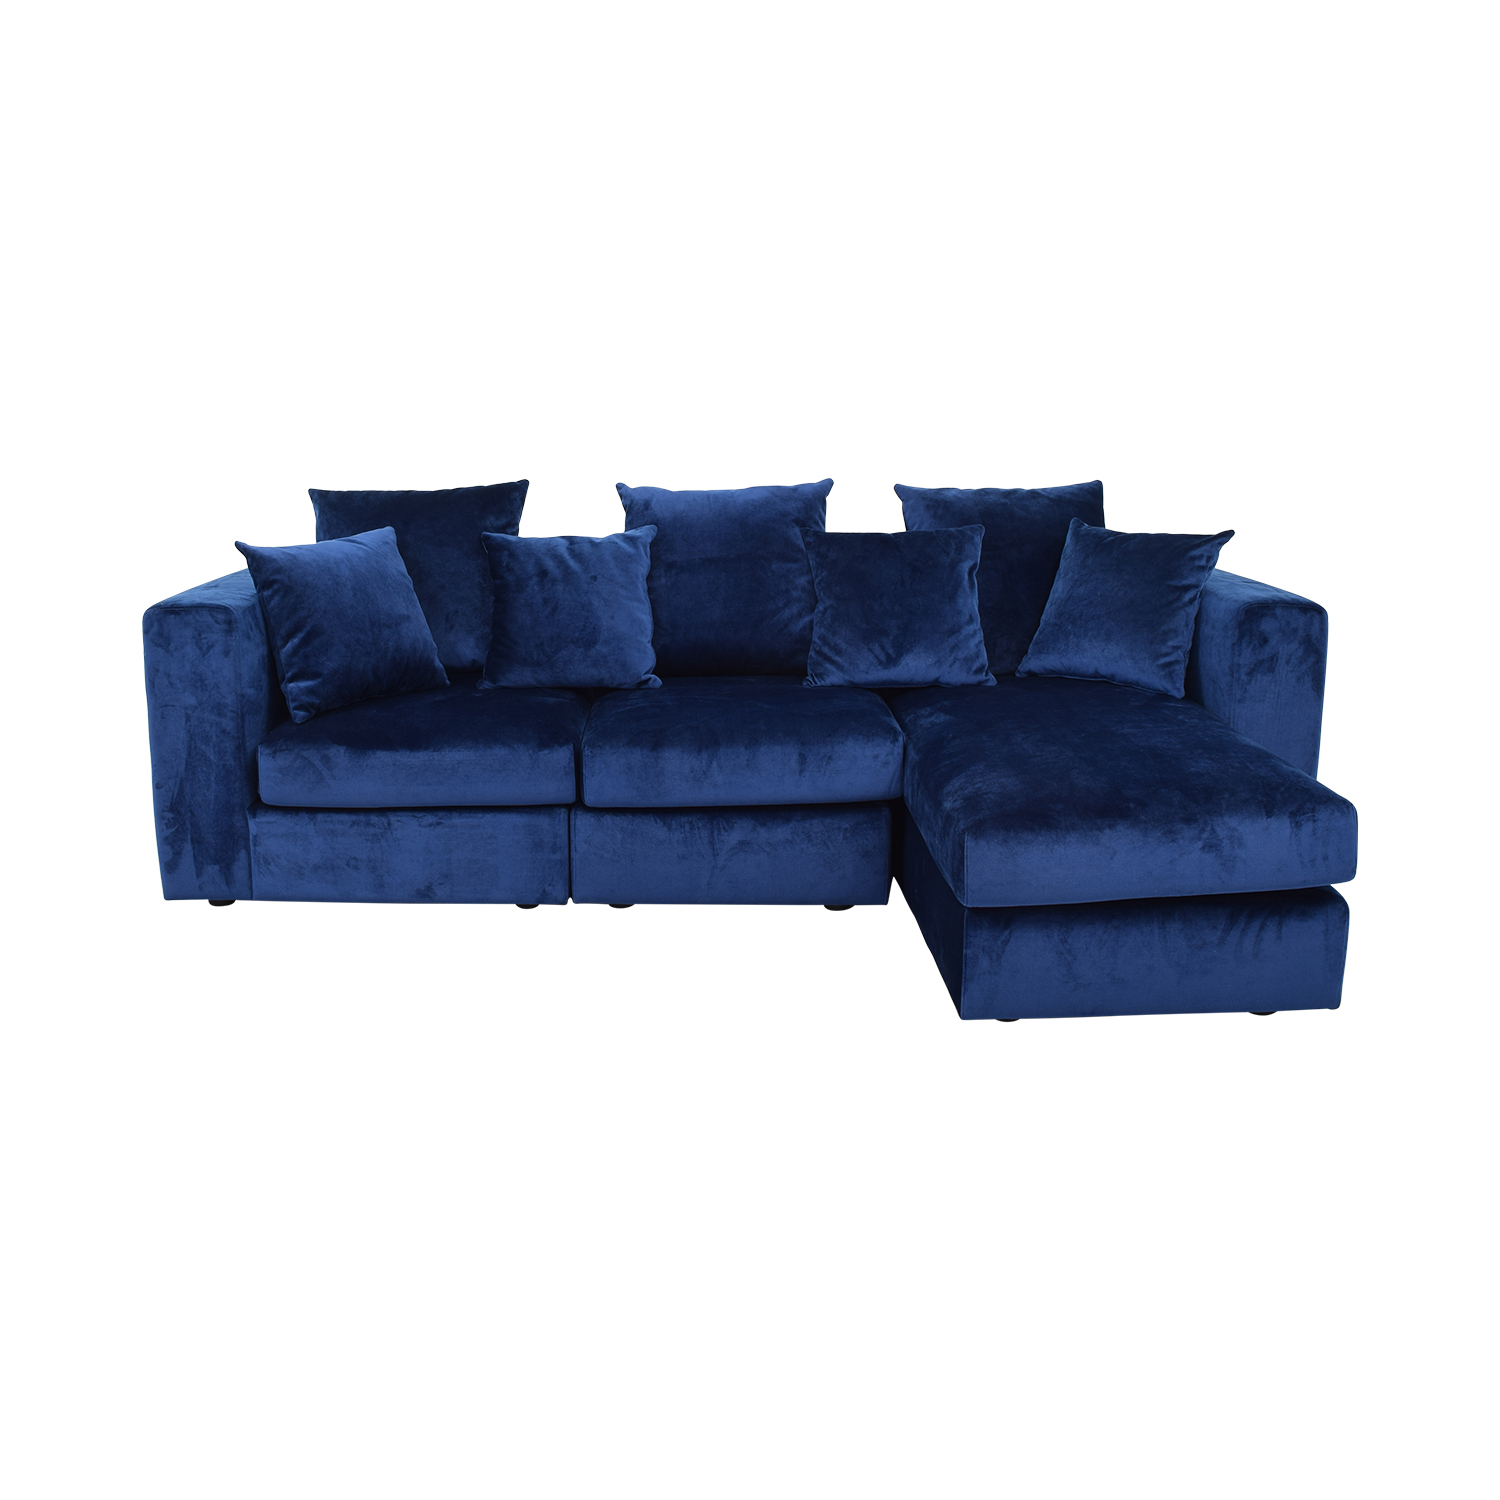 Interior Define Toby Right Chaise Sectional discount